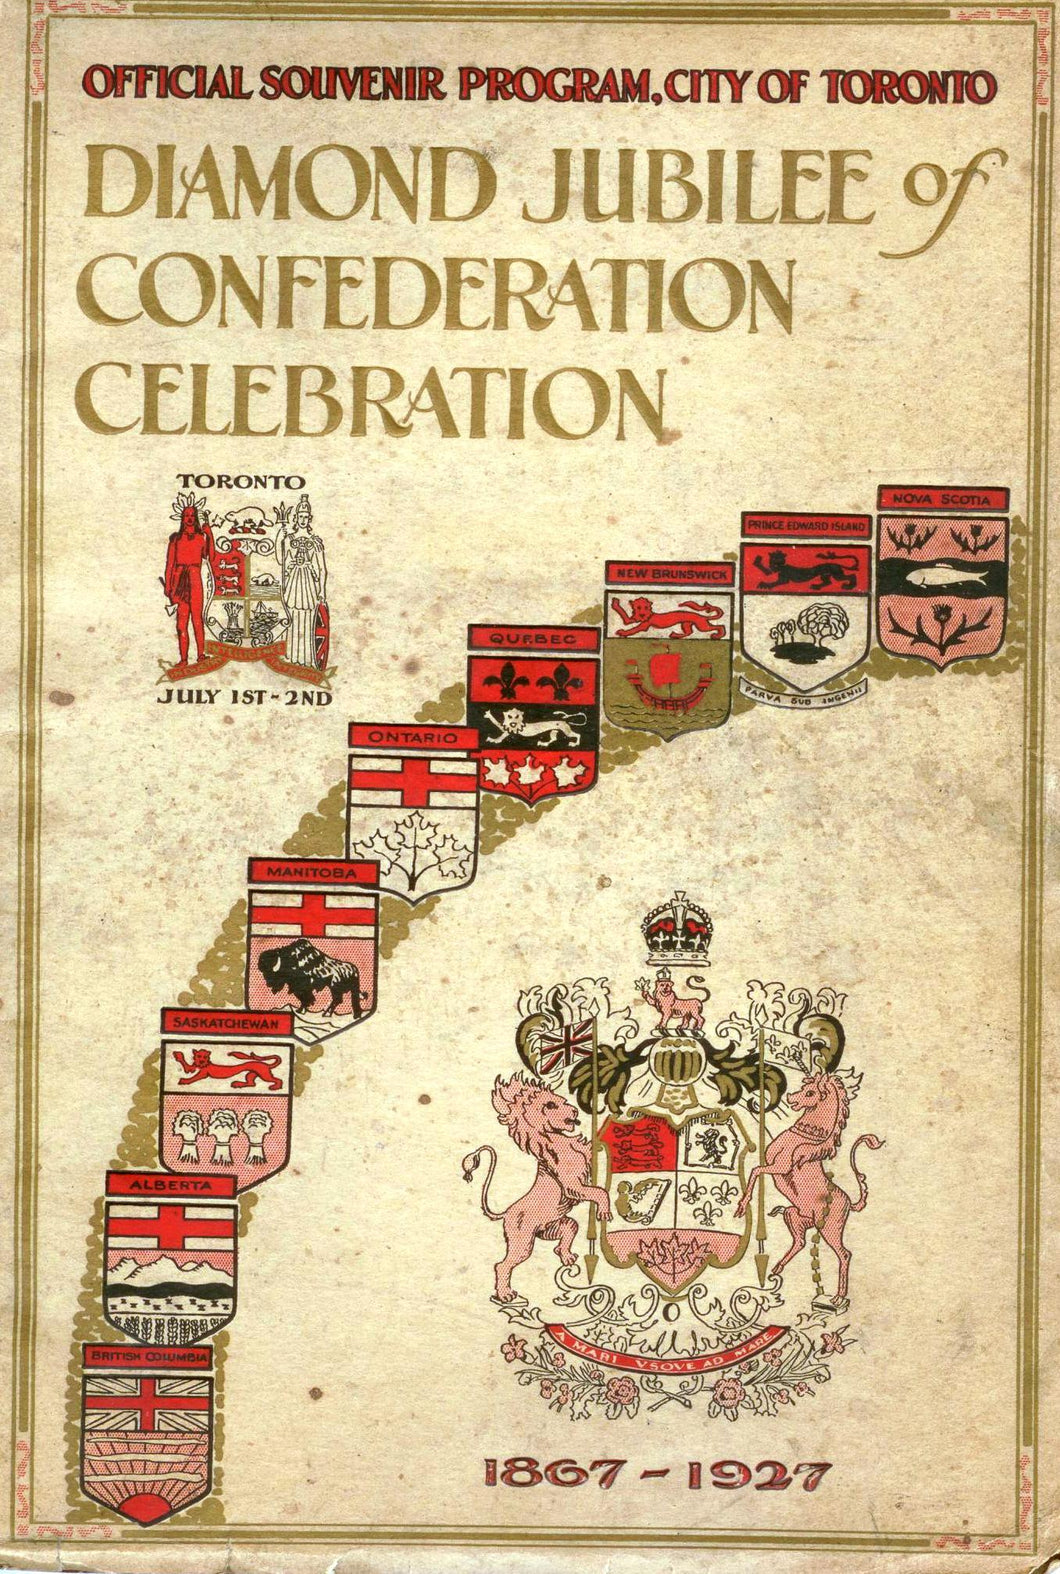 Diamond Jubilee of Confederation Celebration Offical Souvenir Program, City of Toronto